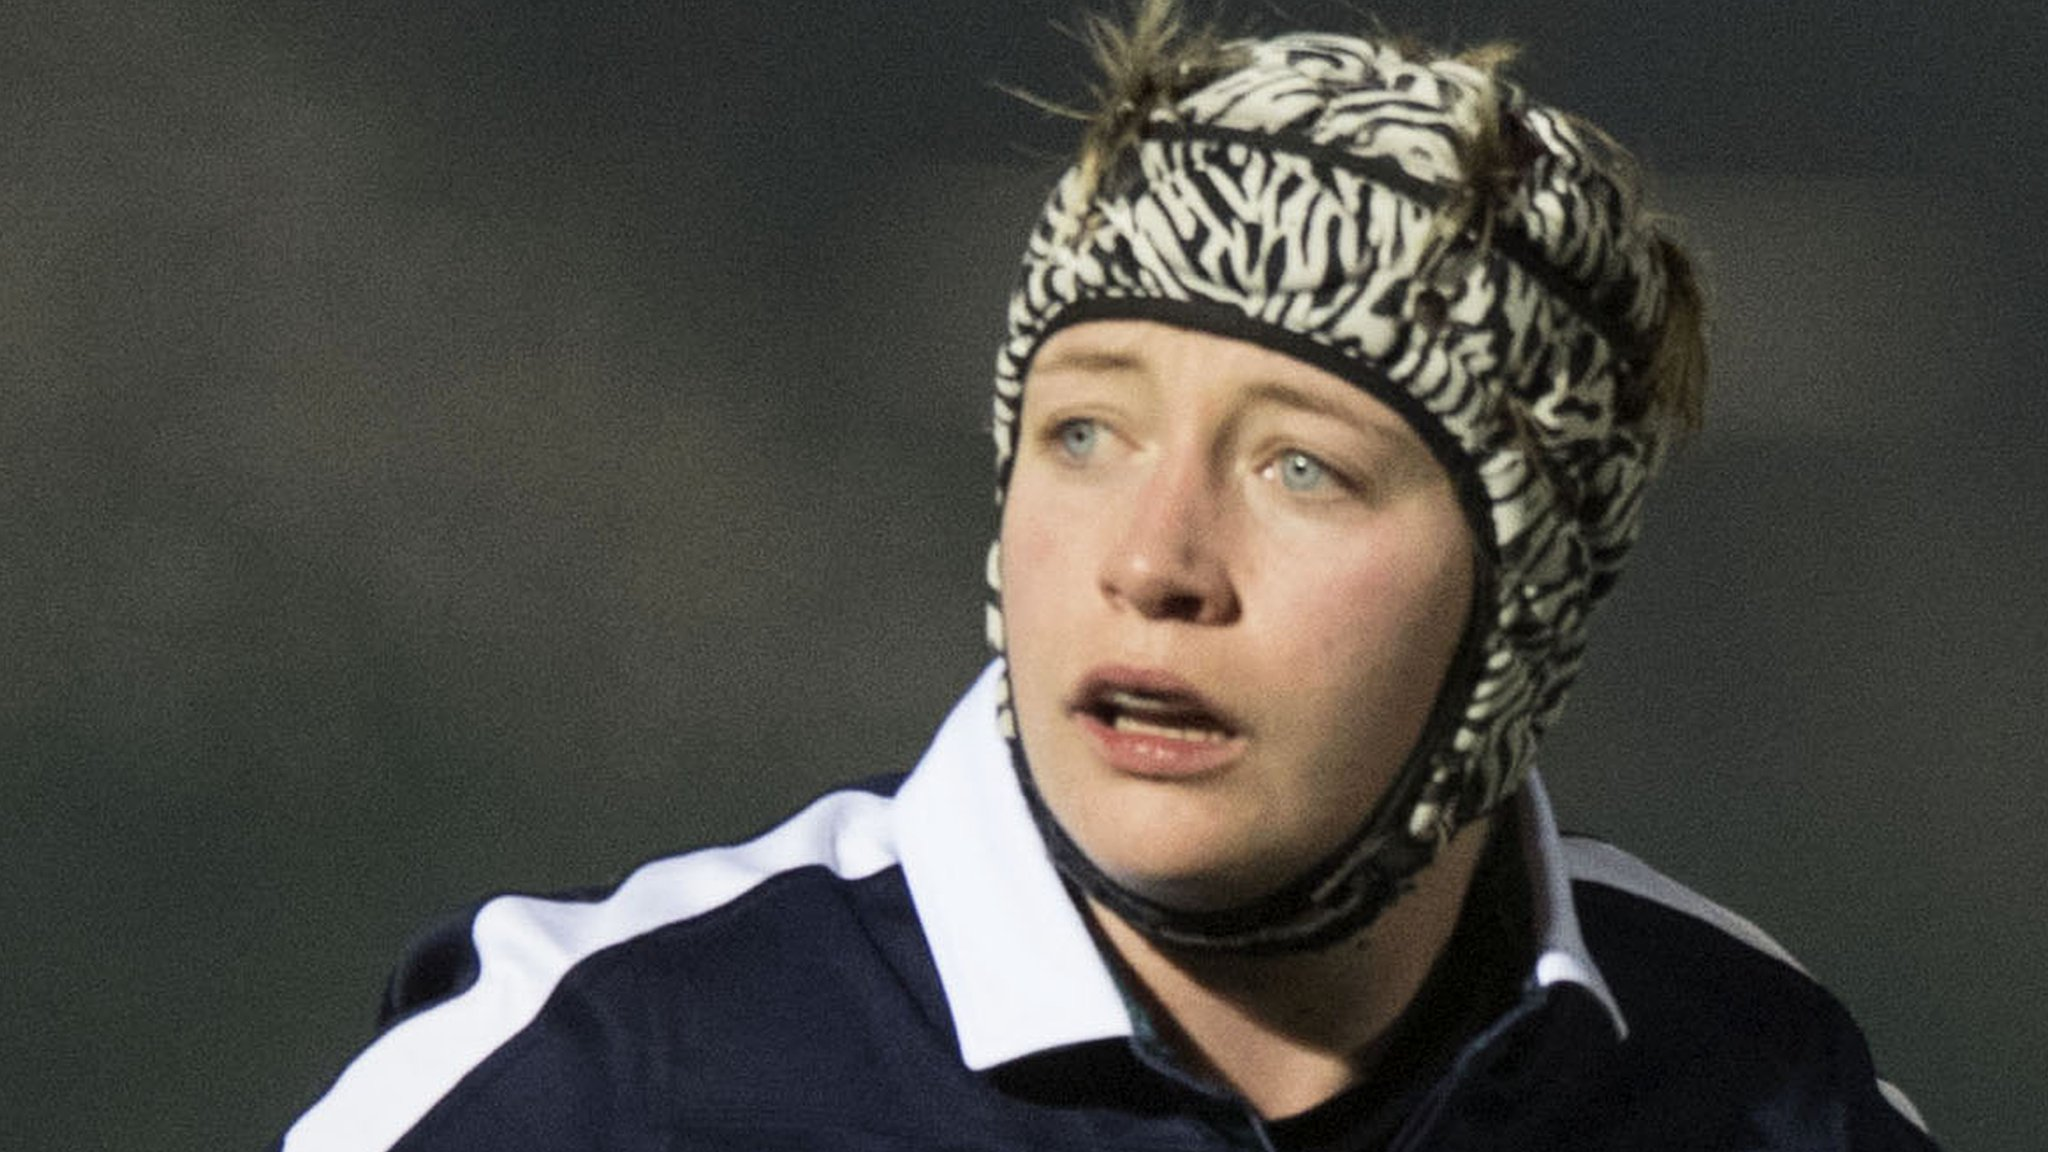 From weighing jumpers to picking them out - Scotland hooker Skeldon's journey to Test rugby